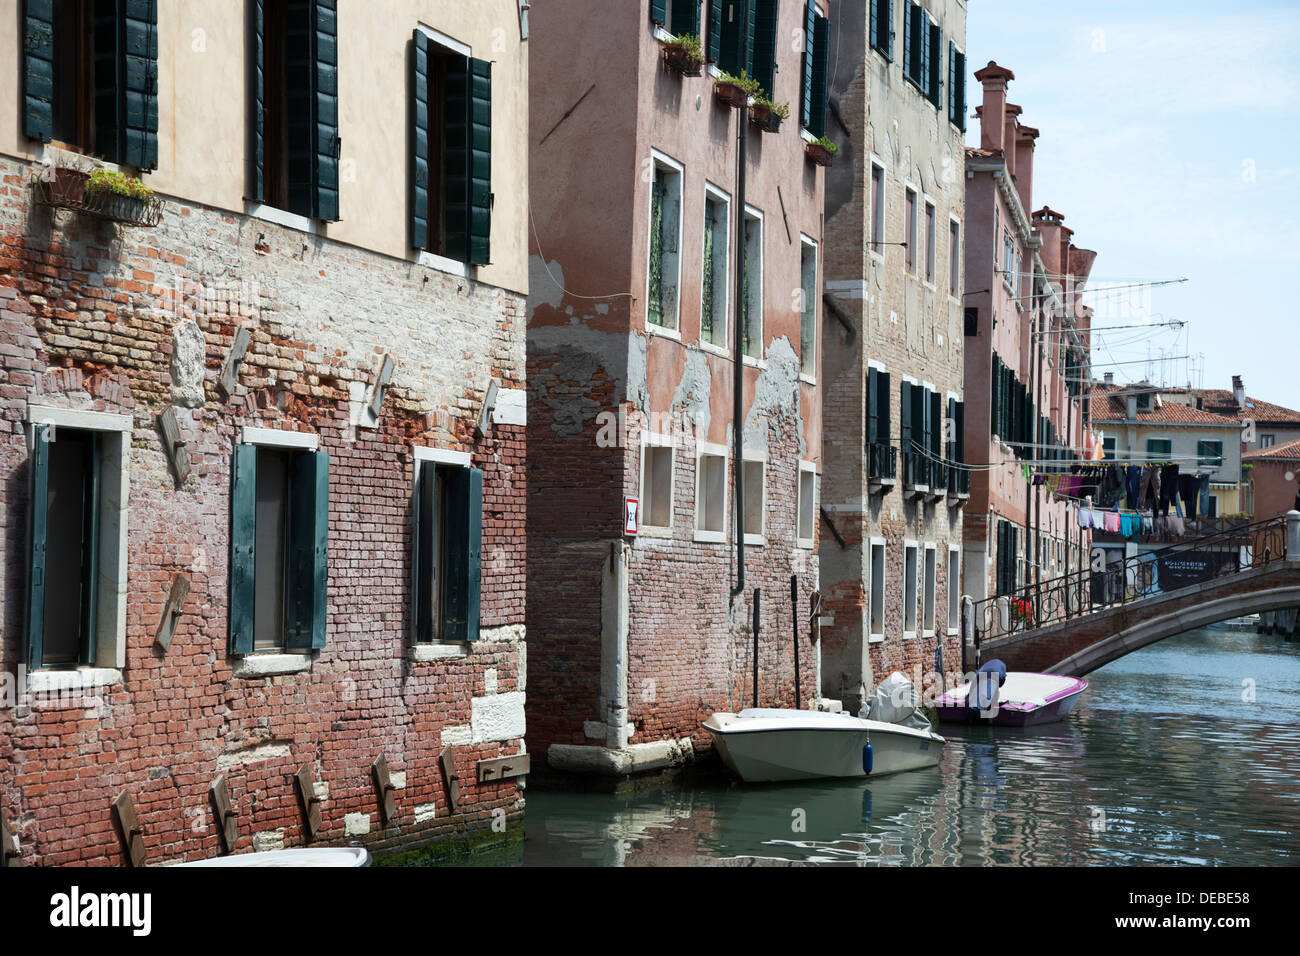 Castello district, the moving Venice with its canals and dilapidated dwellings (Italy). L'usure du temps sur l'habitat Vénitien. - Stock Image